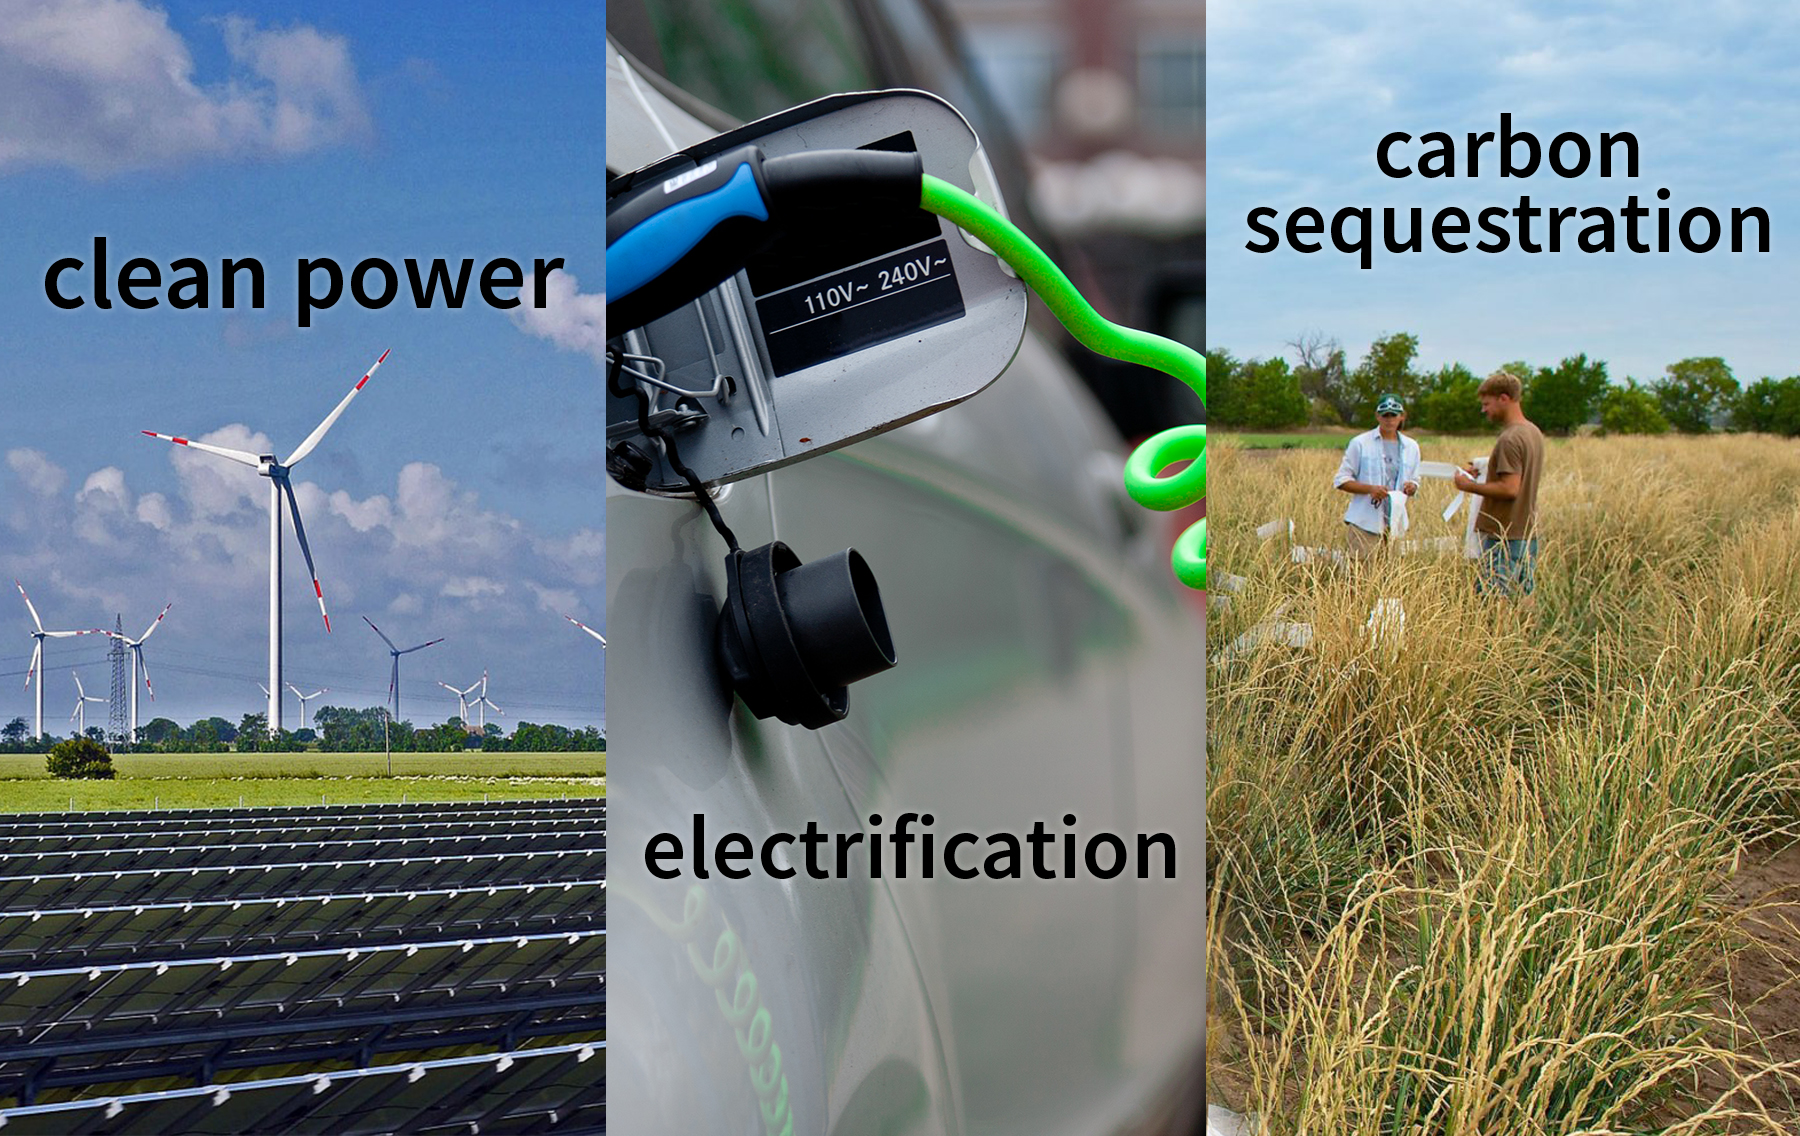 Clean Power, Electrification, Carbon Sequestration